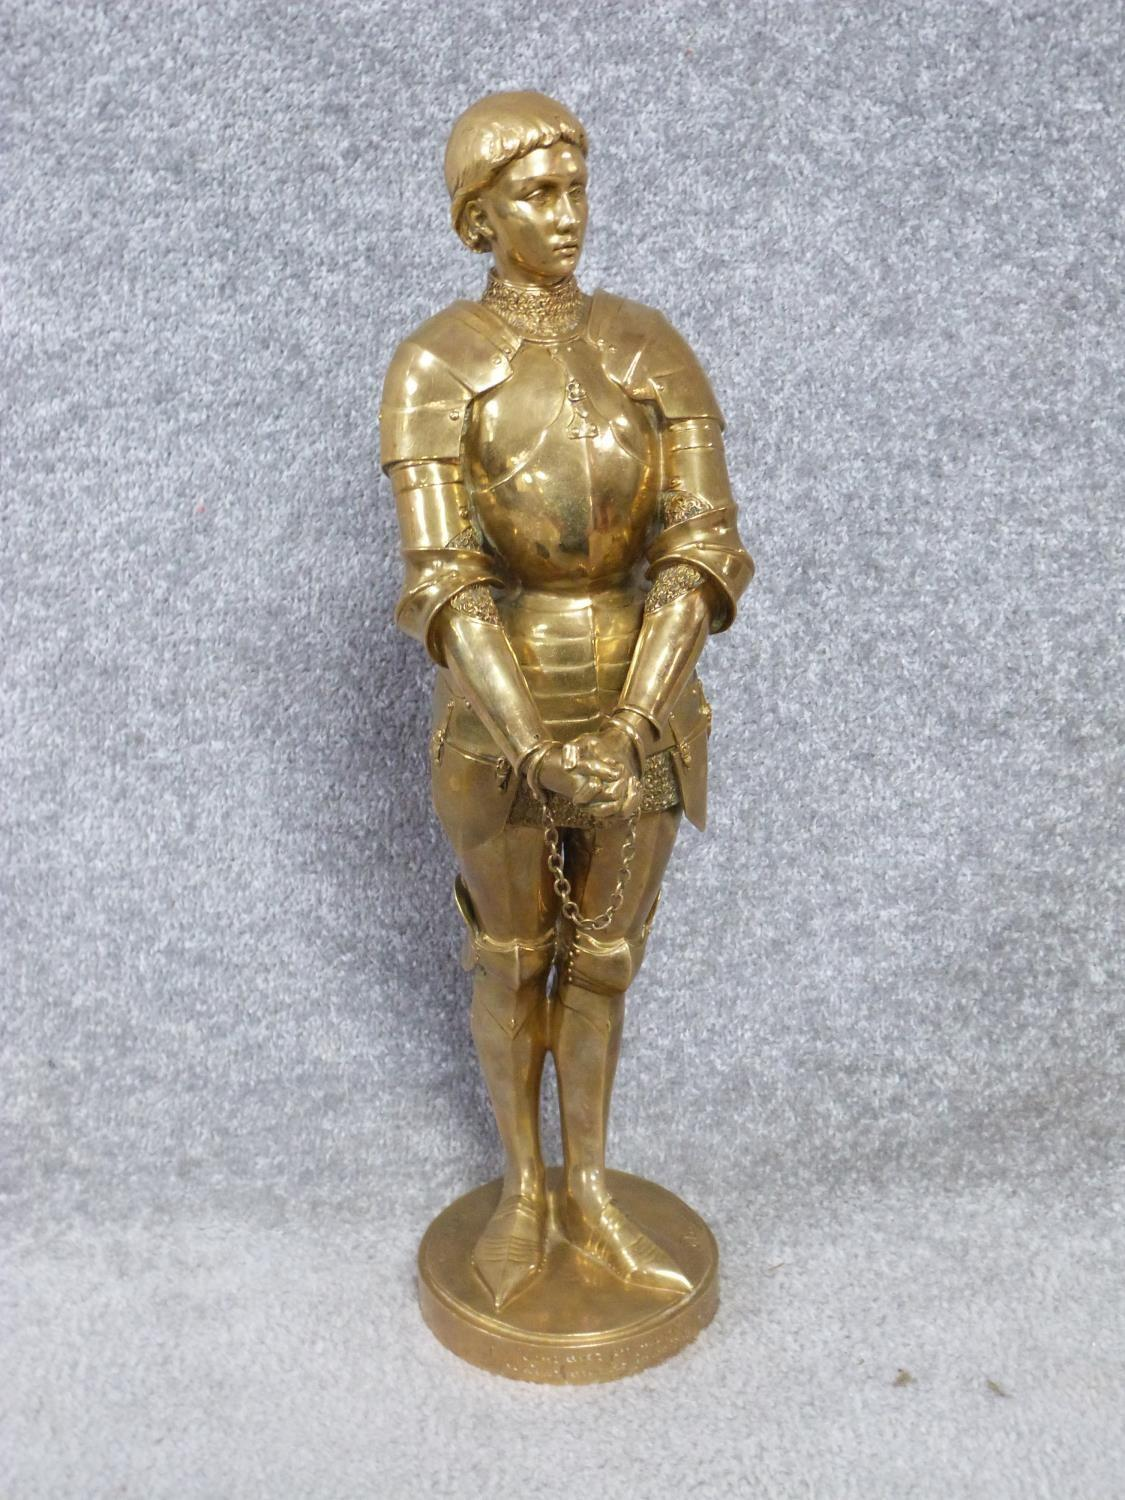 A Barrias gilt bronze Joan of Arc statue. Louis Ernest Barrias (French, 1841-1905), a gilded